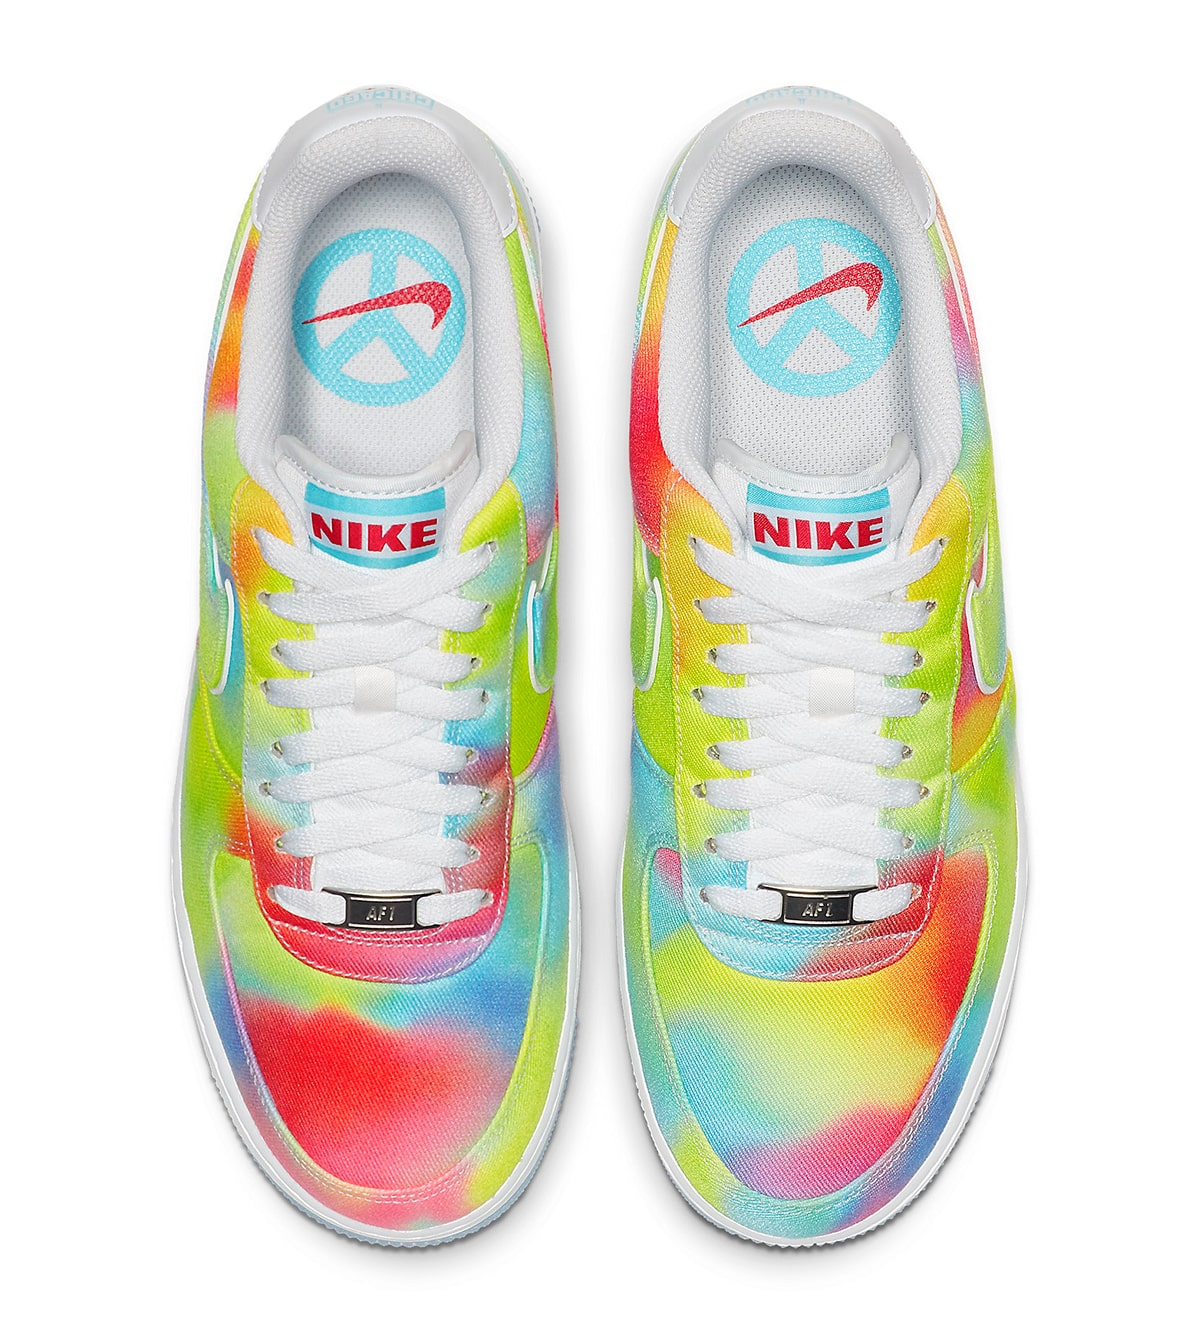 Available Now These Tie Dyed Air Force 1 Lows Celebrates